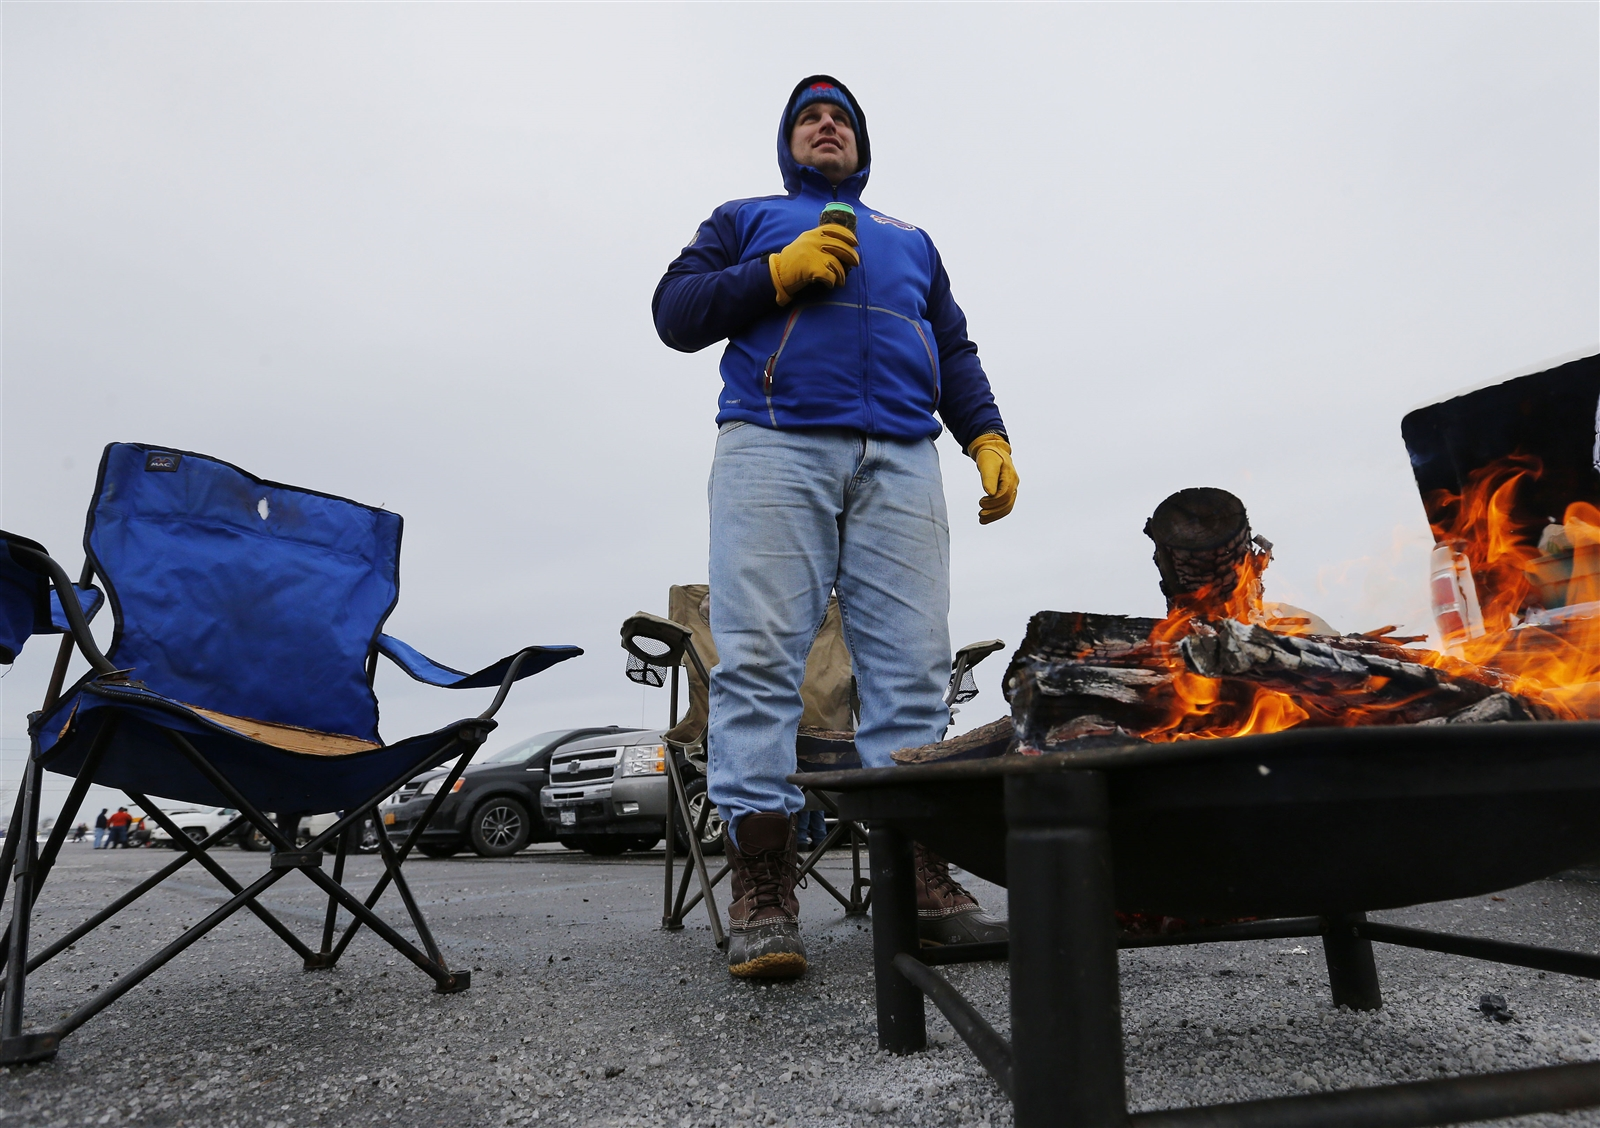 Bills fan Wesley McDonald stays warm by the fire before the game.